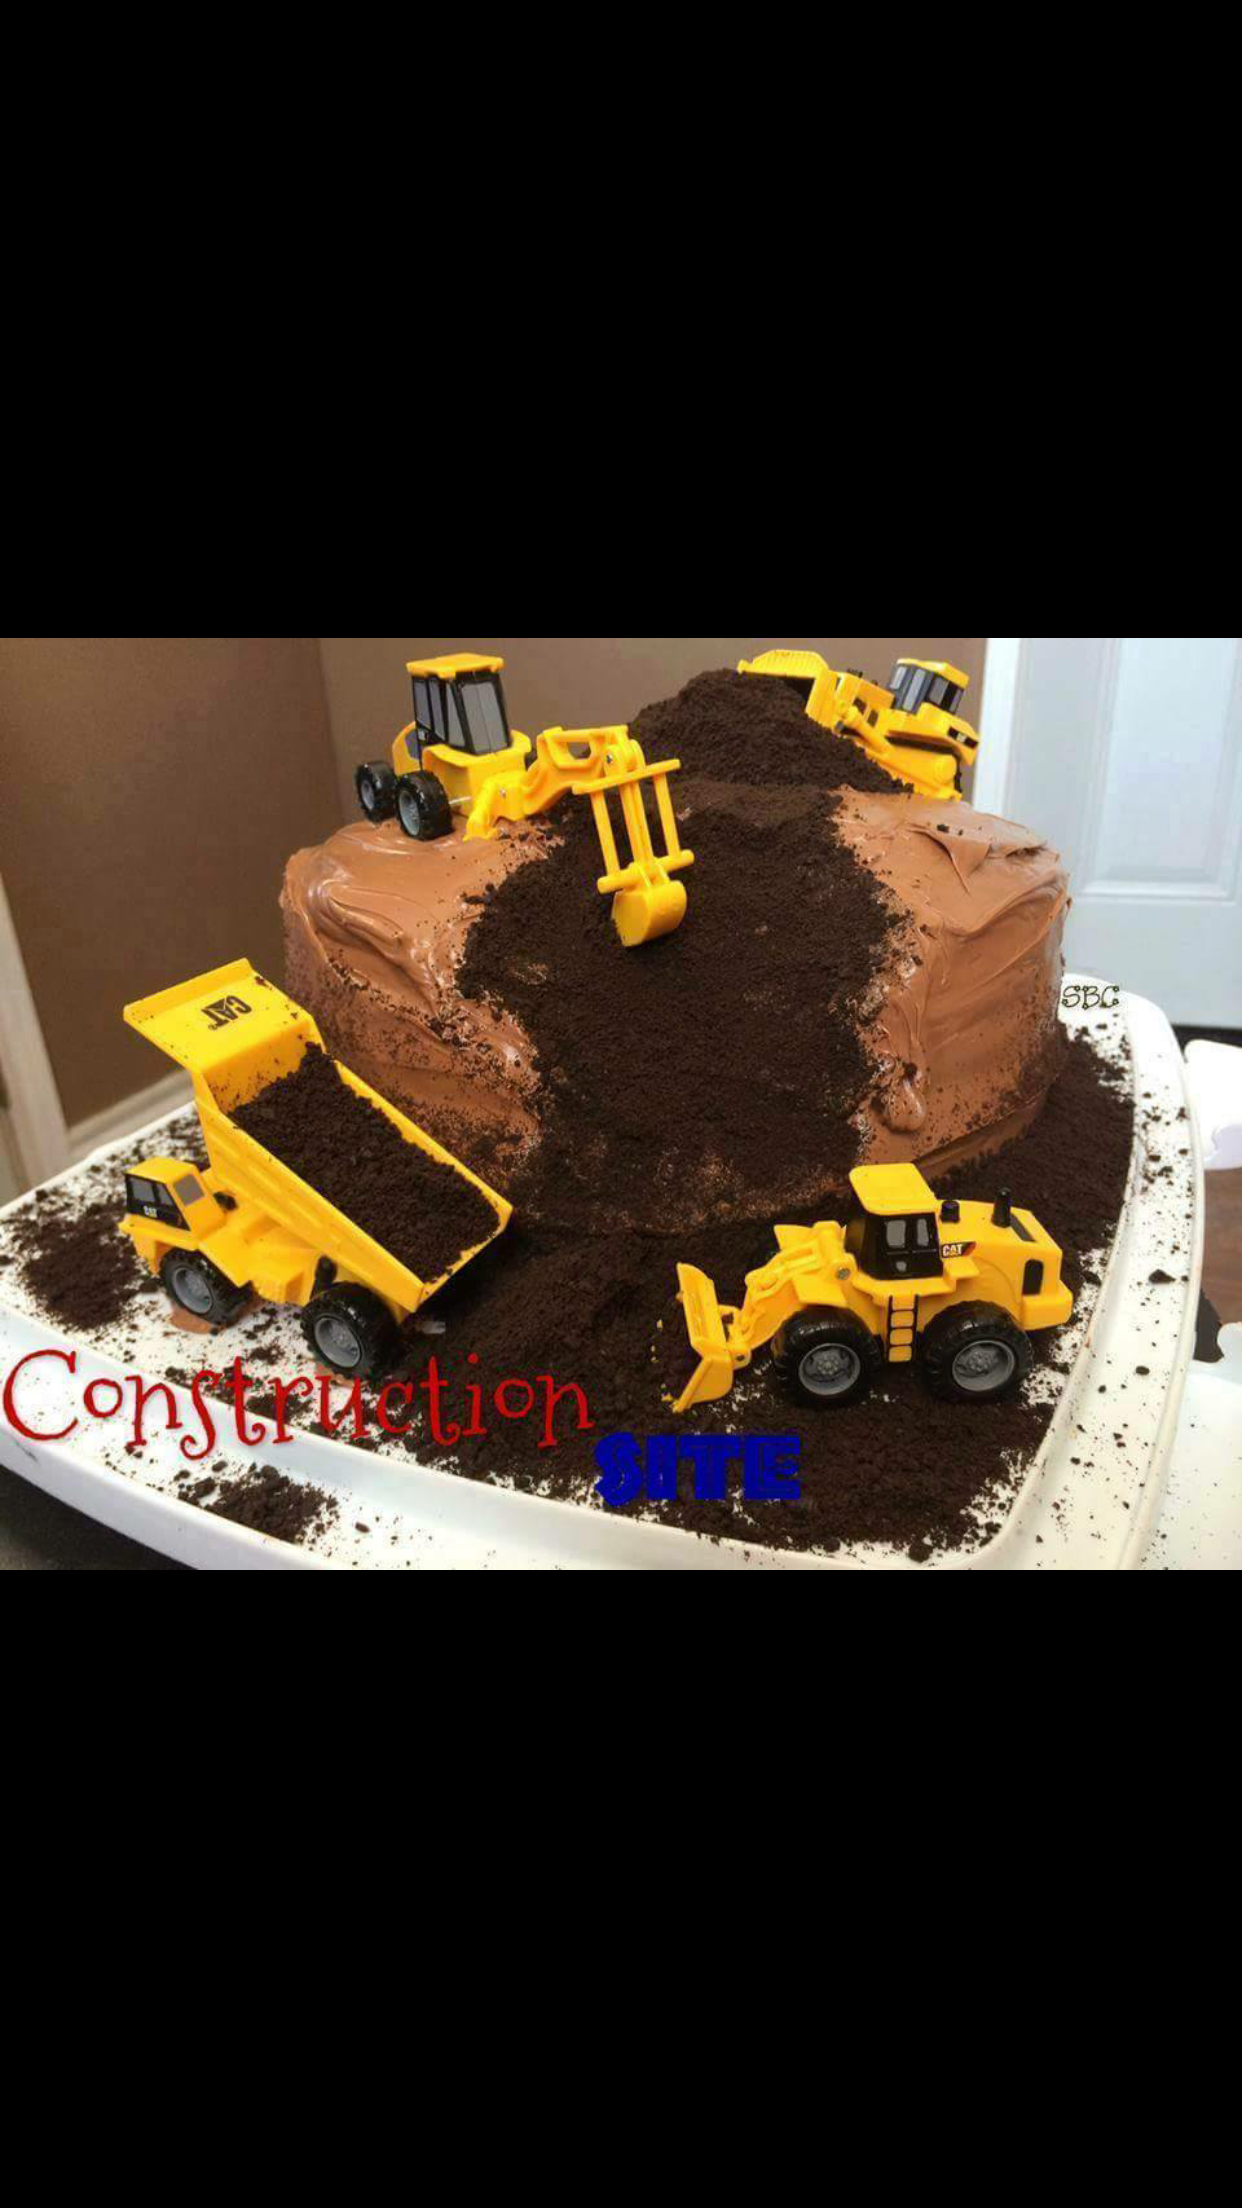 Pin By Cindy Sams On Ethan 2 Pinterest Cake Birthday Cake And